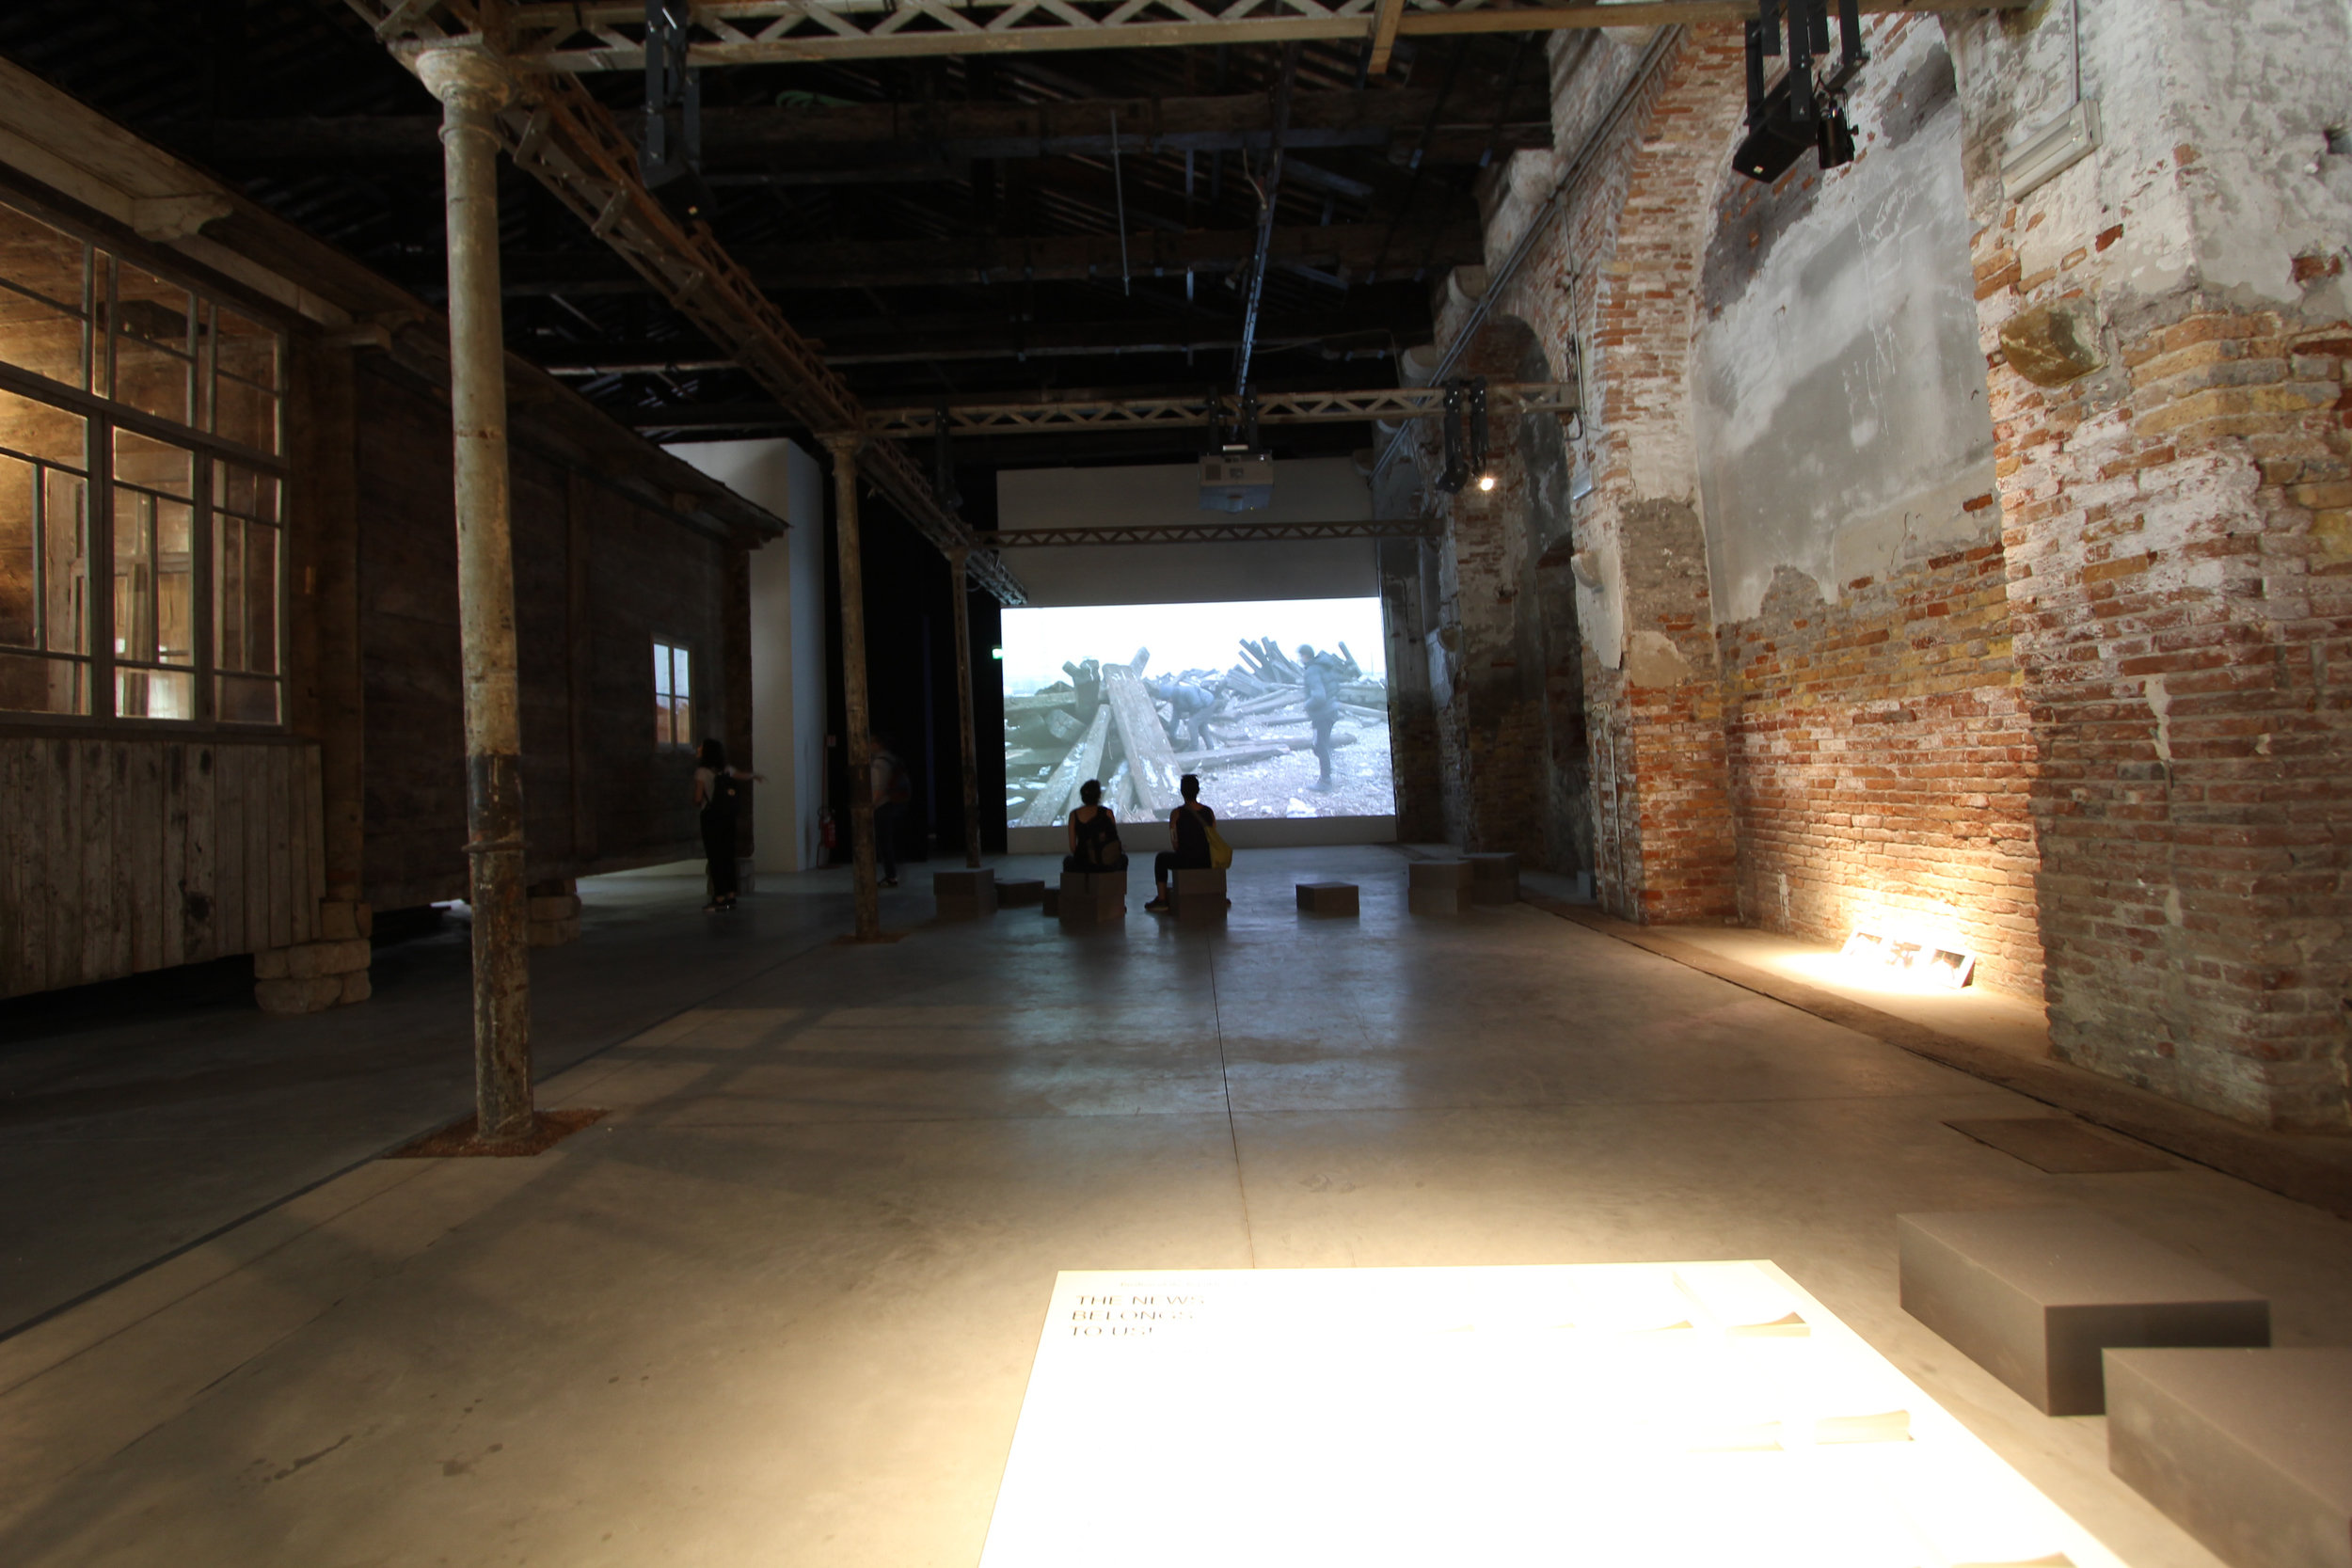 Futurecrafter_Venice Art Biennale 2017_ (175 of 540).jpg